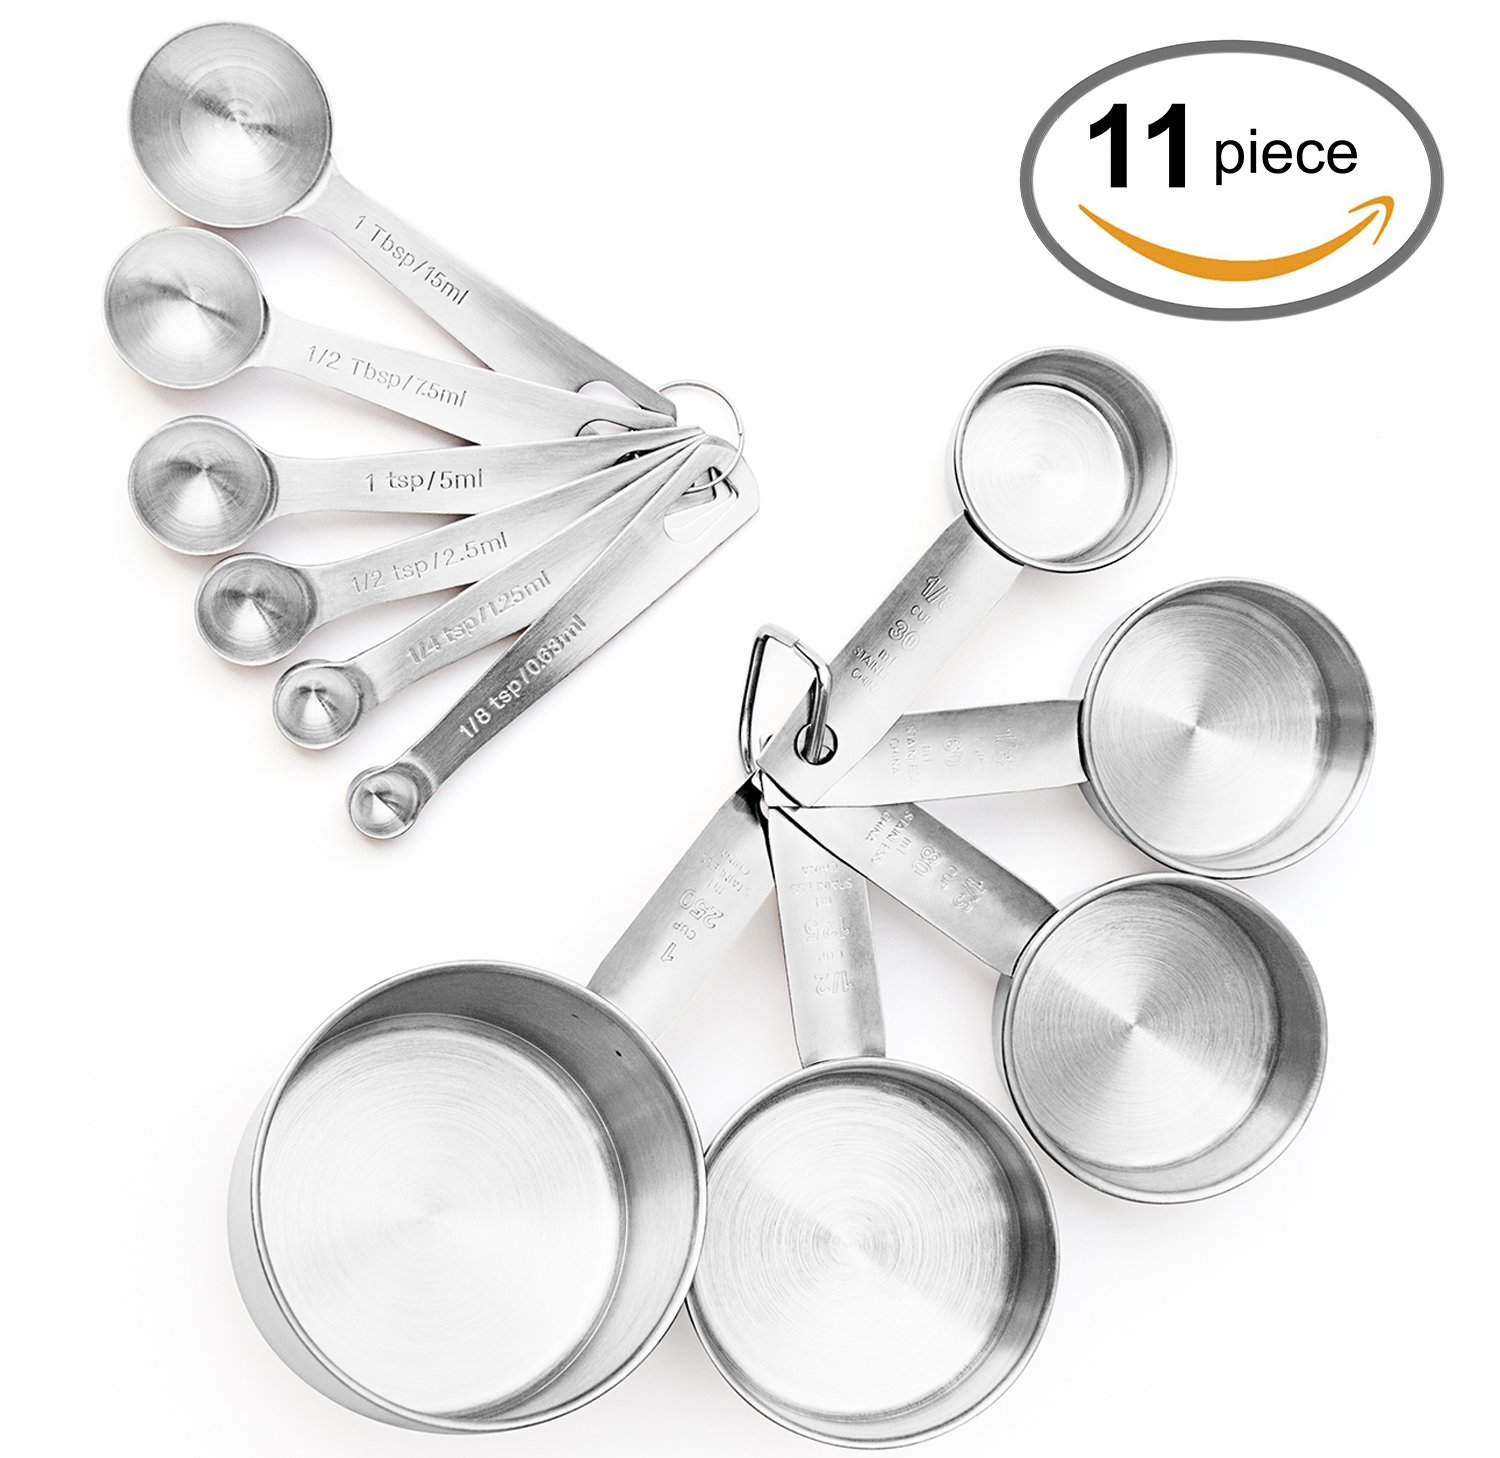 maison maison Measuring Cups and Measuring Spoons Set - 11 Piece Stainless Steel with 2 D Rings and Precise American & Metric Measurements MM-0001